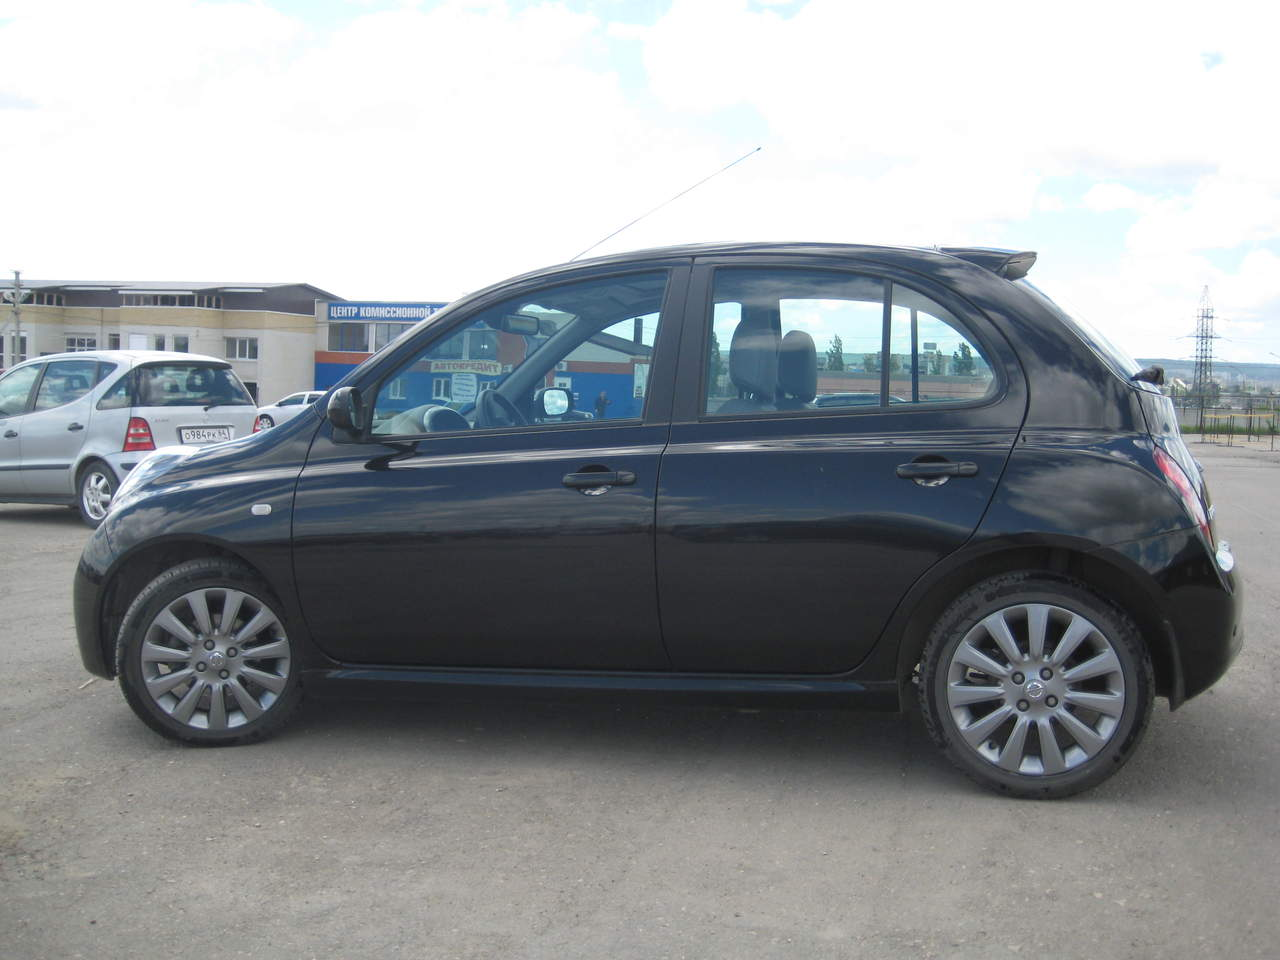 2008 nissan micra for sale 1398cc gasoline ff automatic for sale. Black Bedroom Furniture Sets. Home Design Ideas